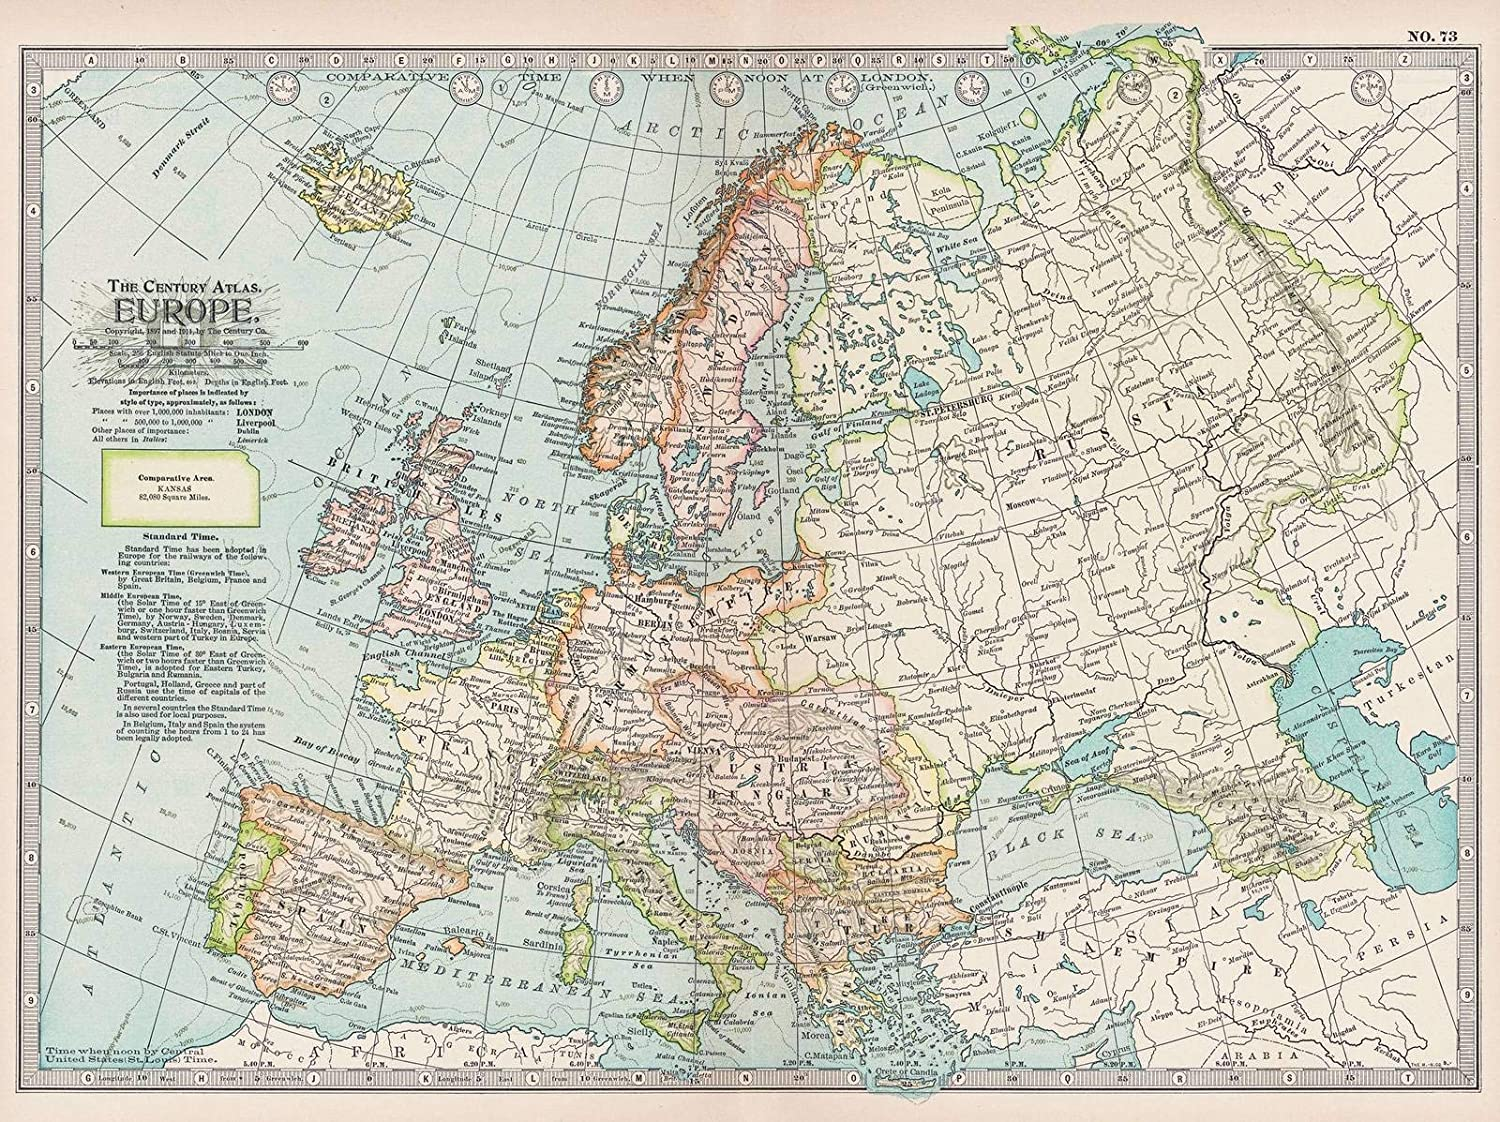 Historic Pictoric Map - Europe 1914 - Century Atlas World - Vintage on map of ancient middle east, map of european countries, map of great britain, map of native american tribes in 1700s, map of eruope, map of england, map of italy, map of austro-hungarian empire before 1910, map of continents, map of hungary before wwi, map of asia, map of australia, map of napoleon's empire, map of africa, map of germany, map from europe, map of austria hungary 1850, map of east prussia in 1937,